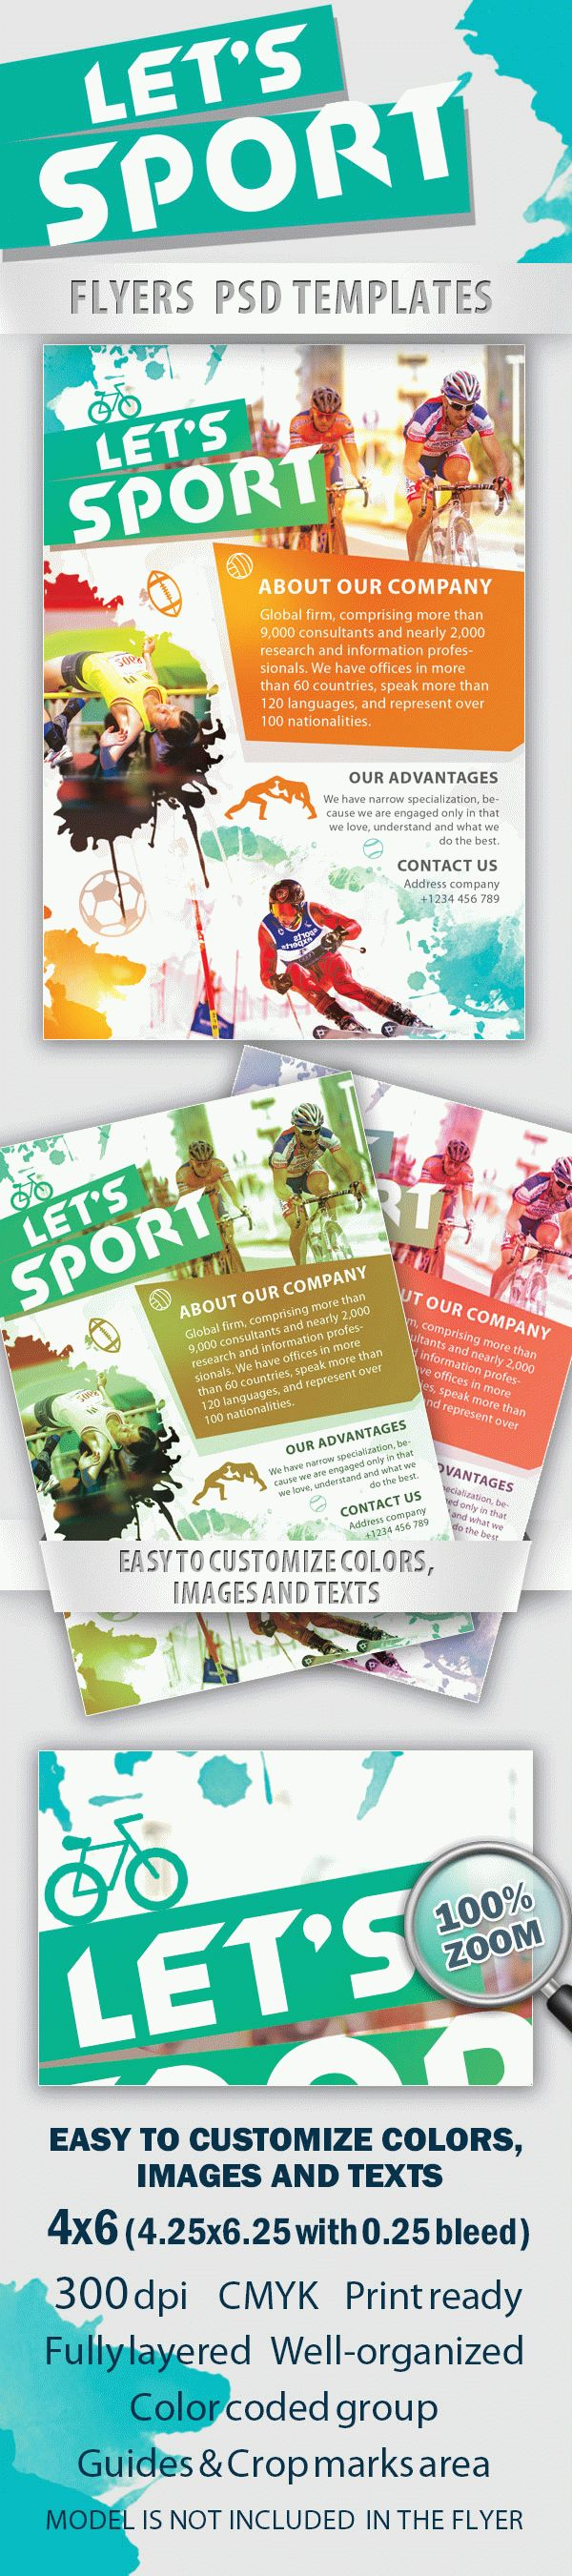 Let's Sport PSD Flyer Template